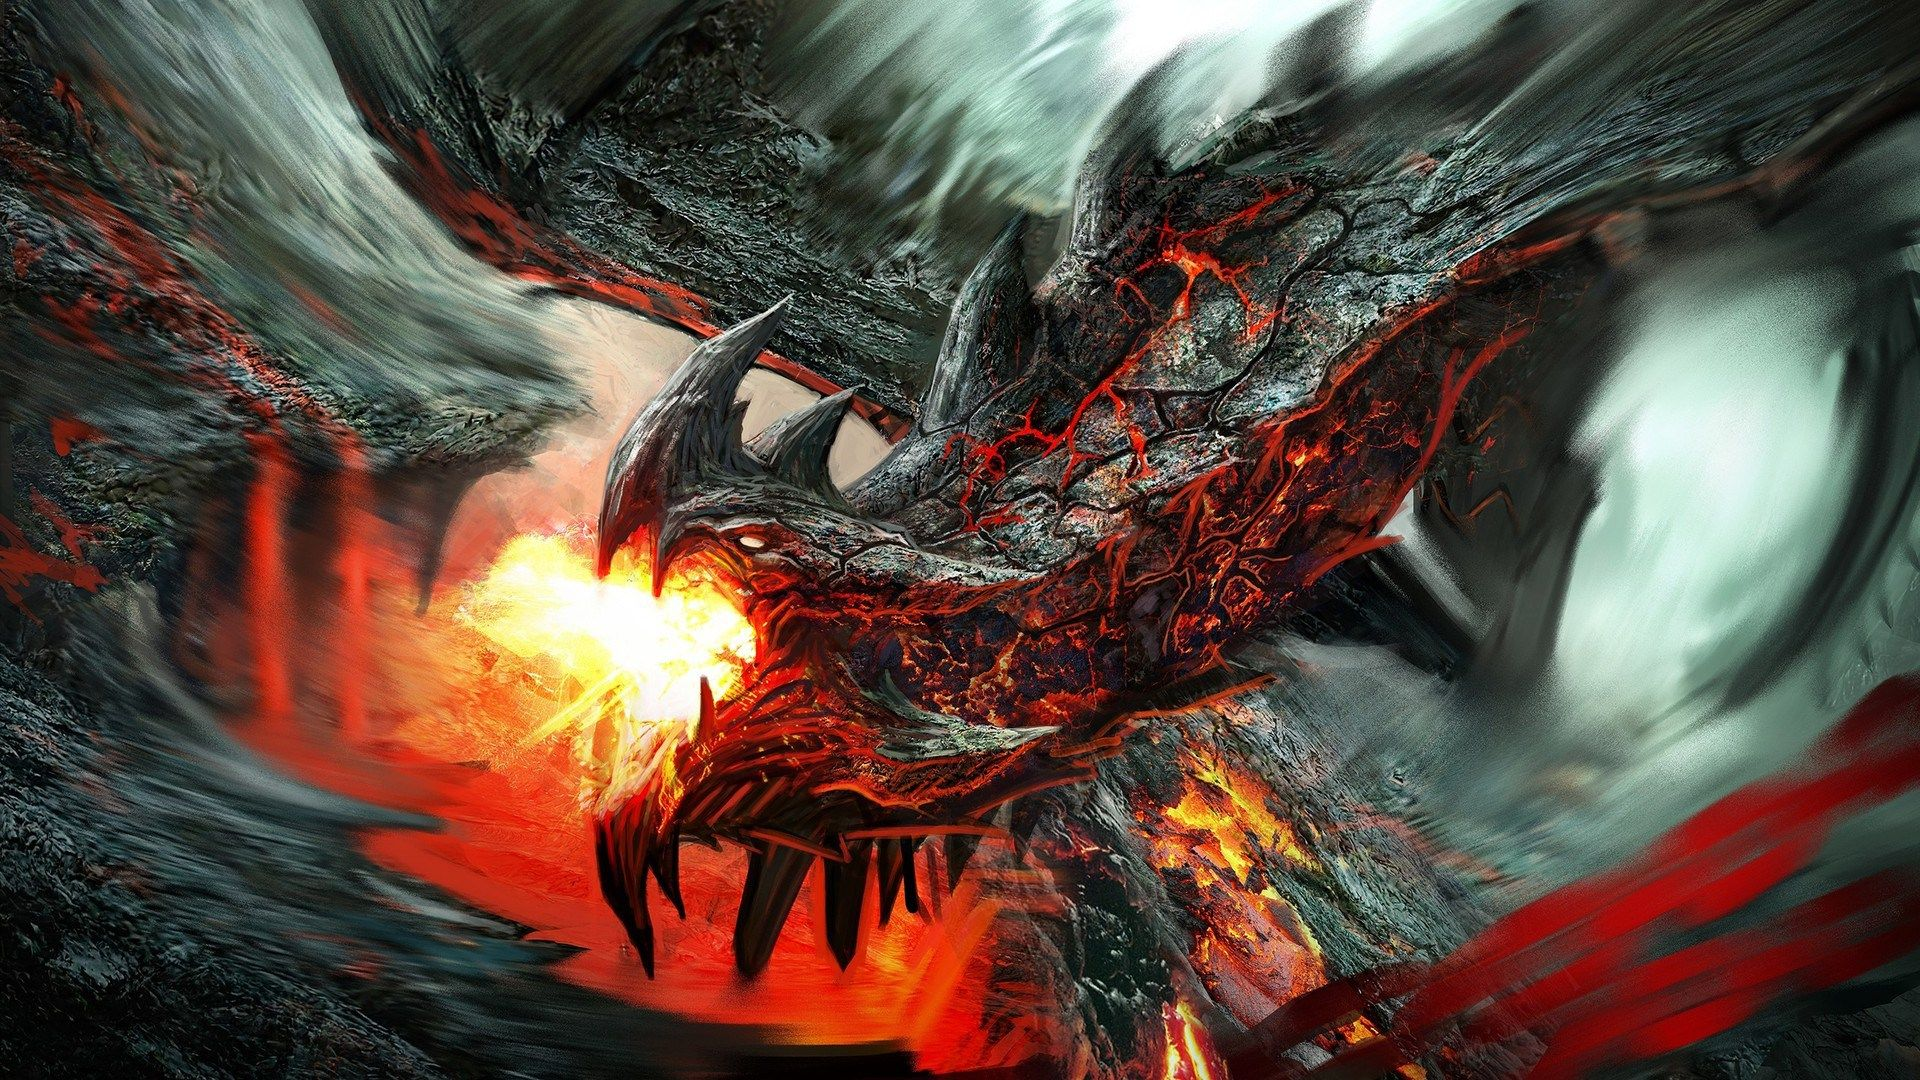 1600x1200 Coolest Dragon Wallpapers Dragon City Guide Mythology Fantasy